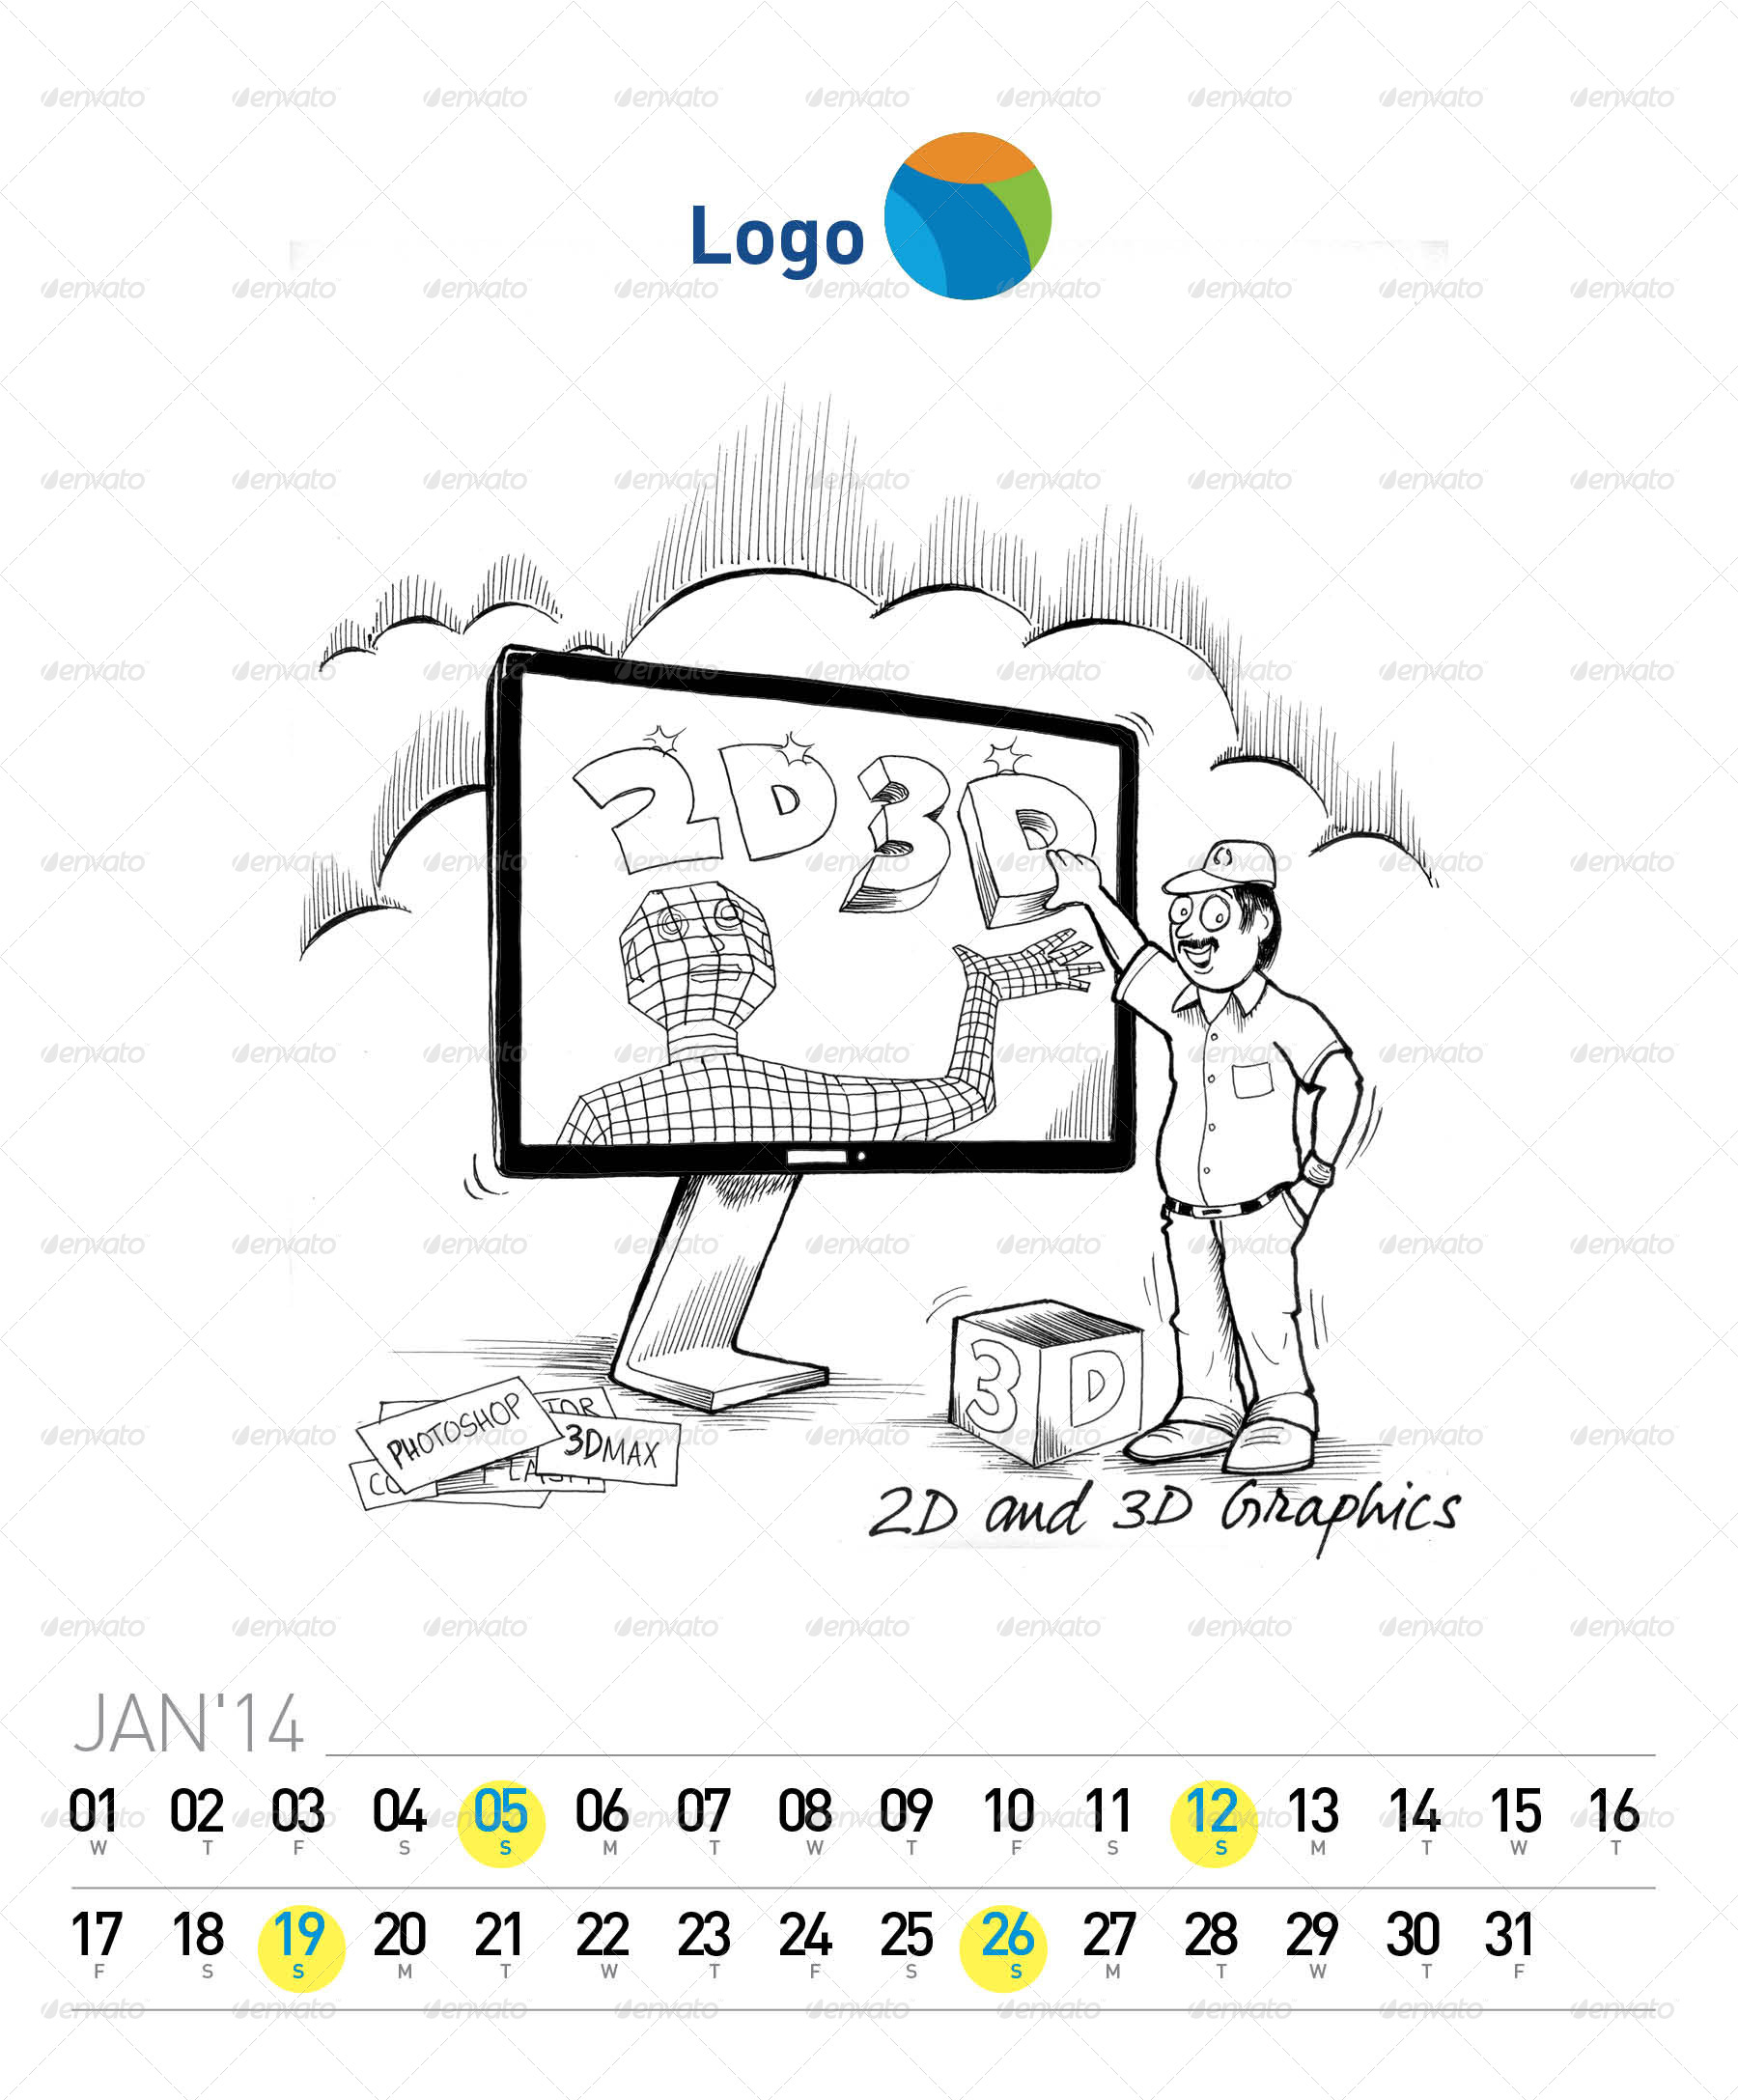 Creative 2014 Desk Calendar (with Illustration) by